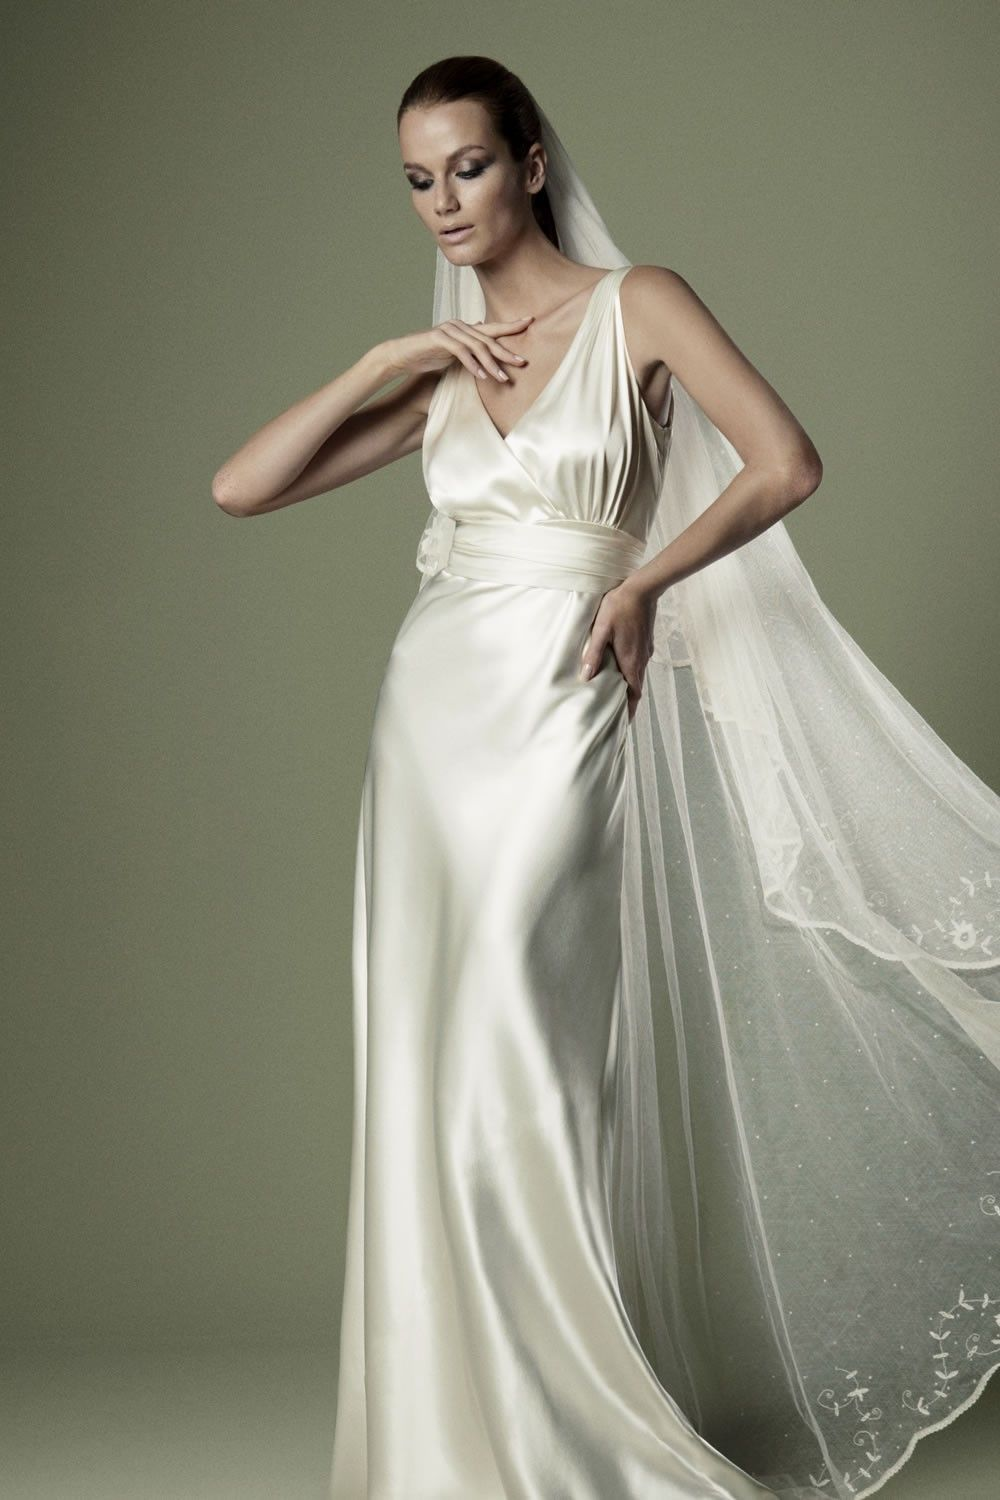 1930'S INSPIRED BRIDAL GOWNS Satin Dress with Cross